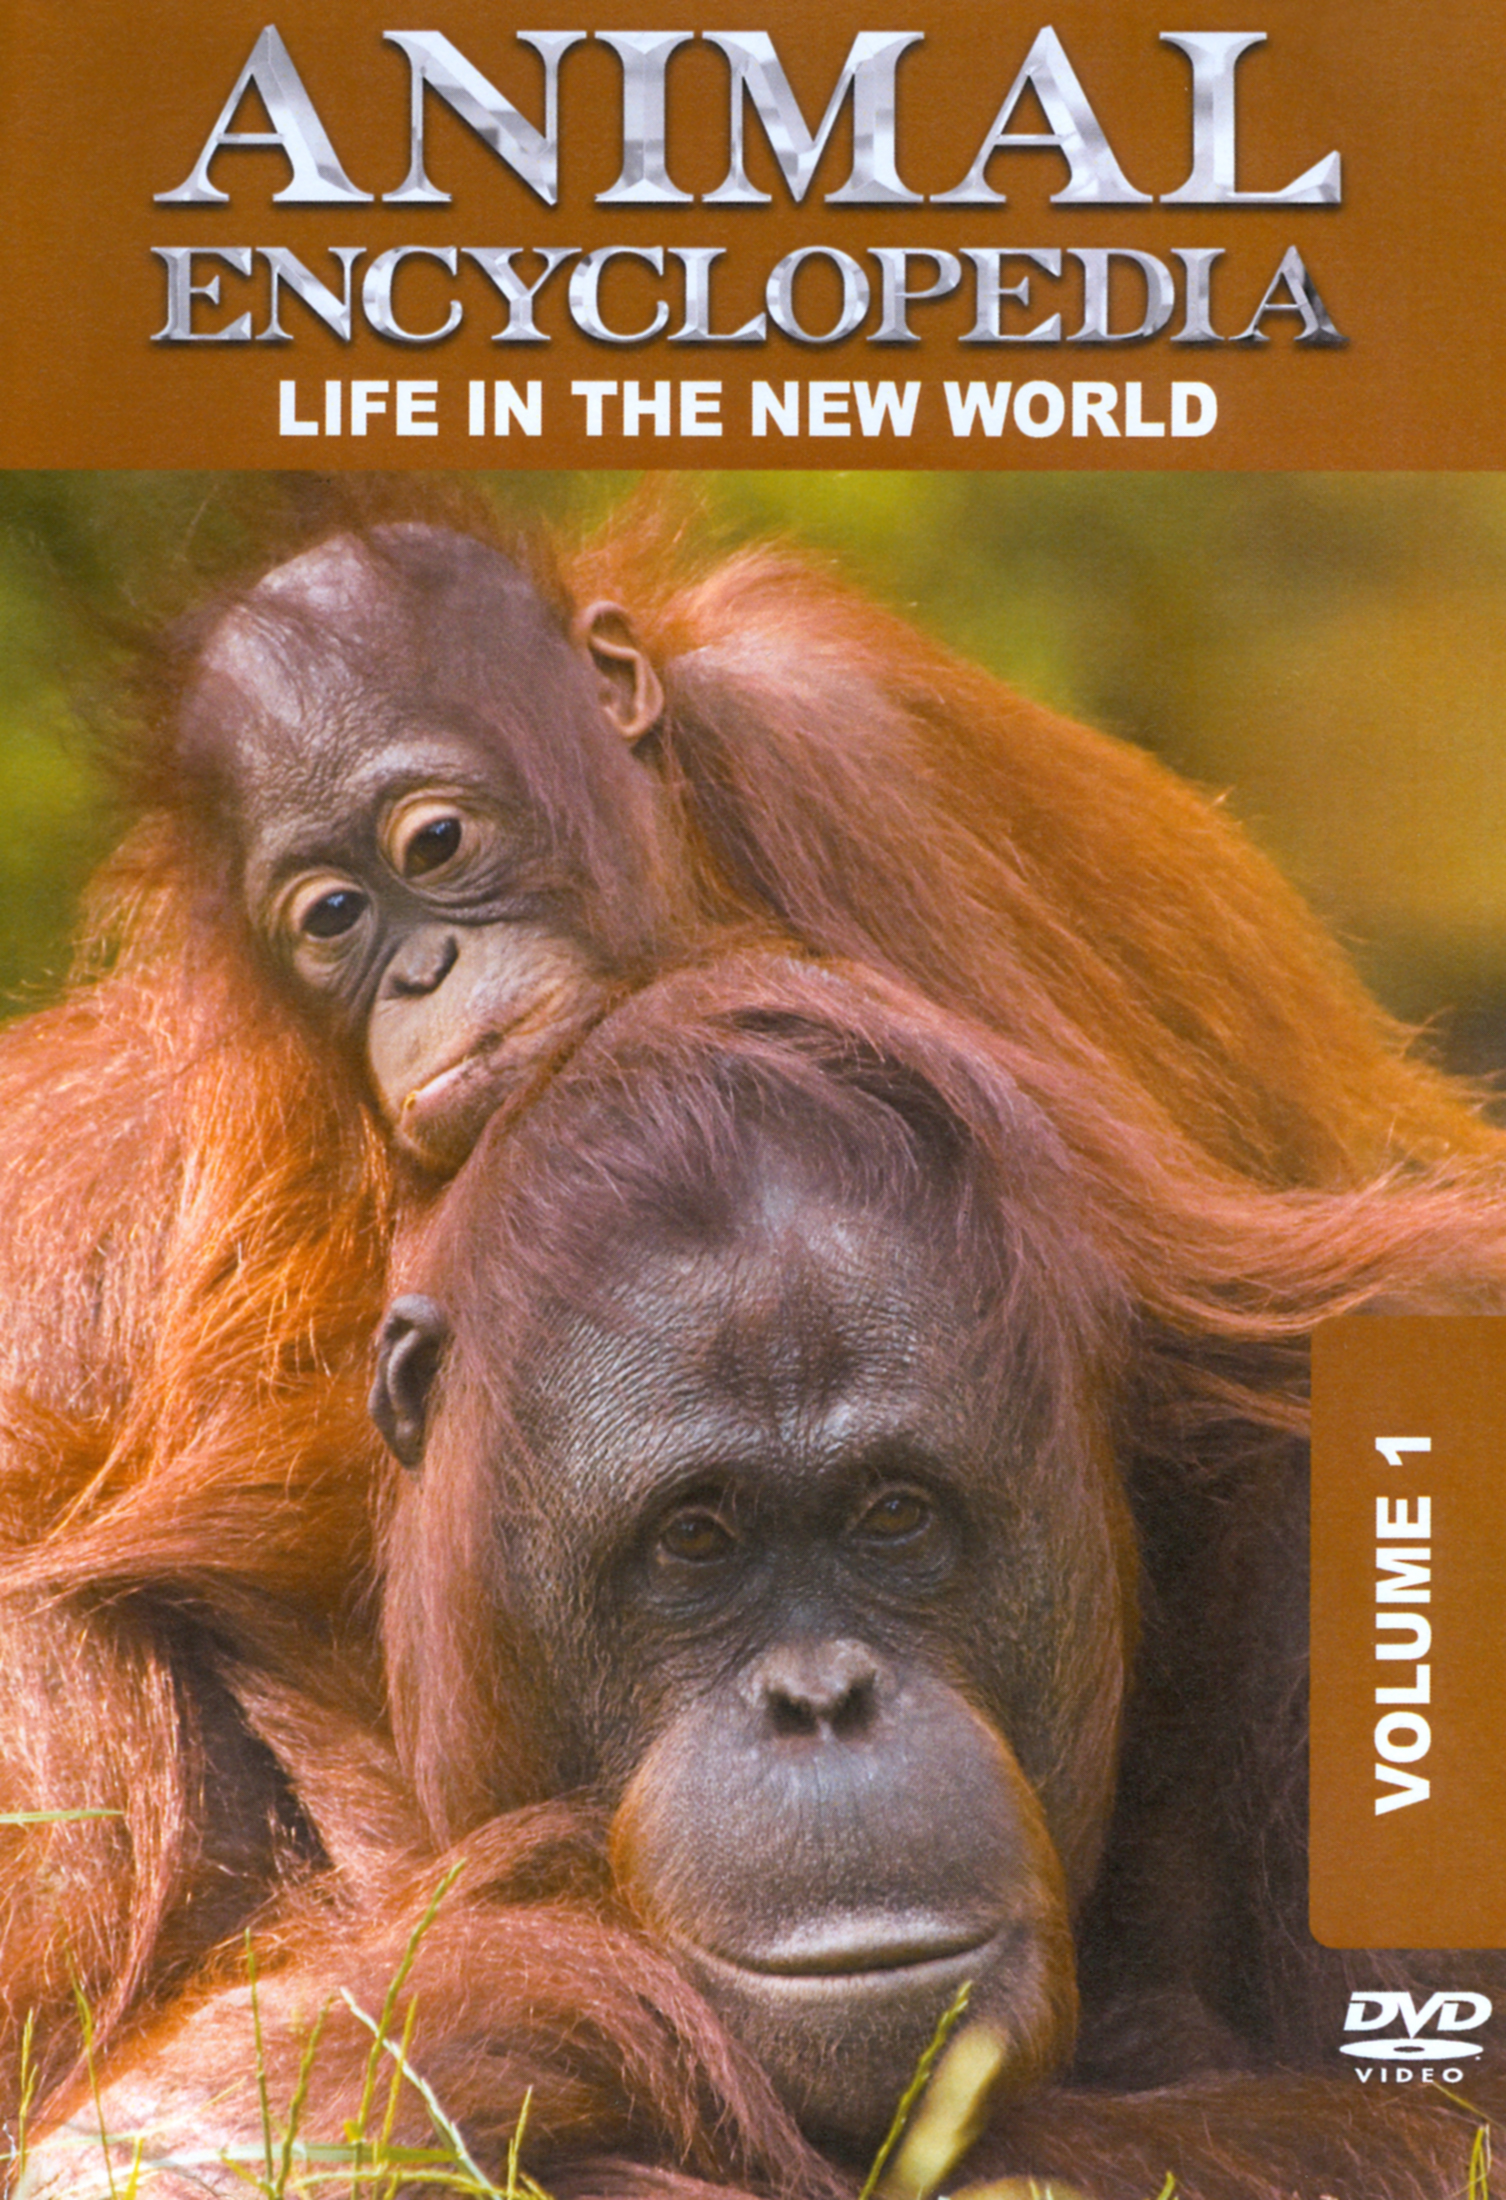 Animal Encyclopedia, Vol. 1: Life in the New World